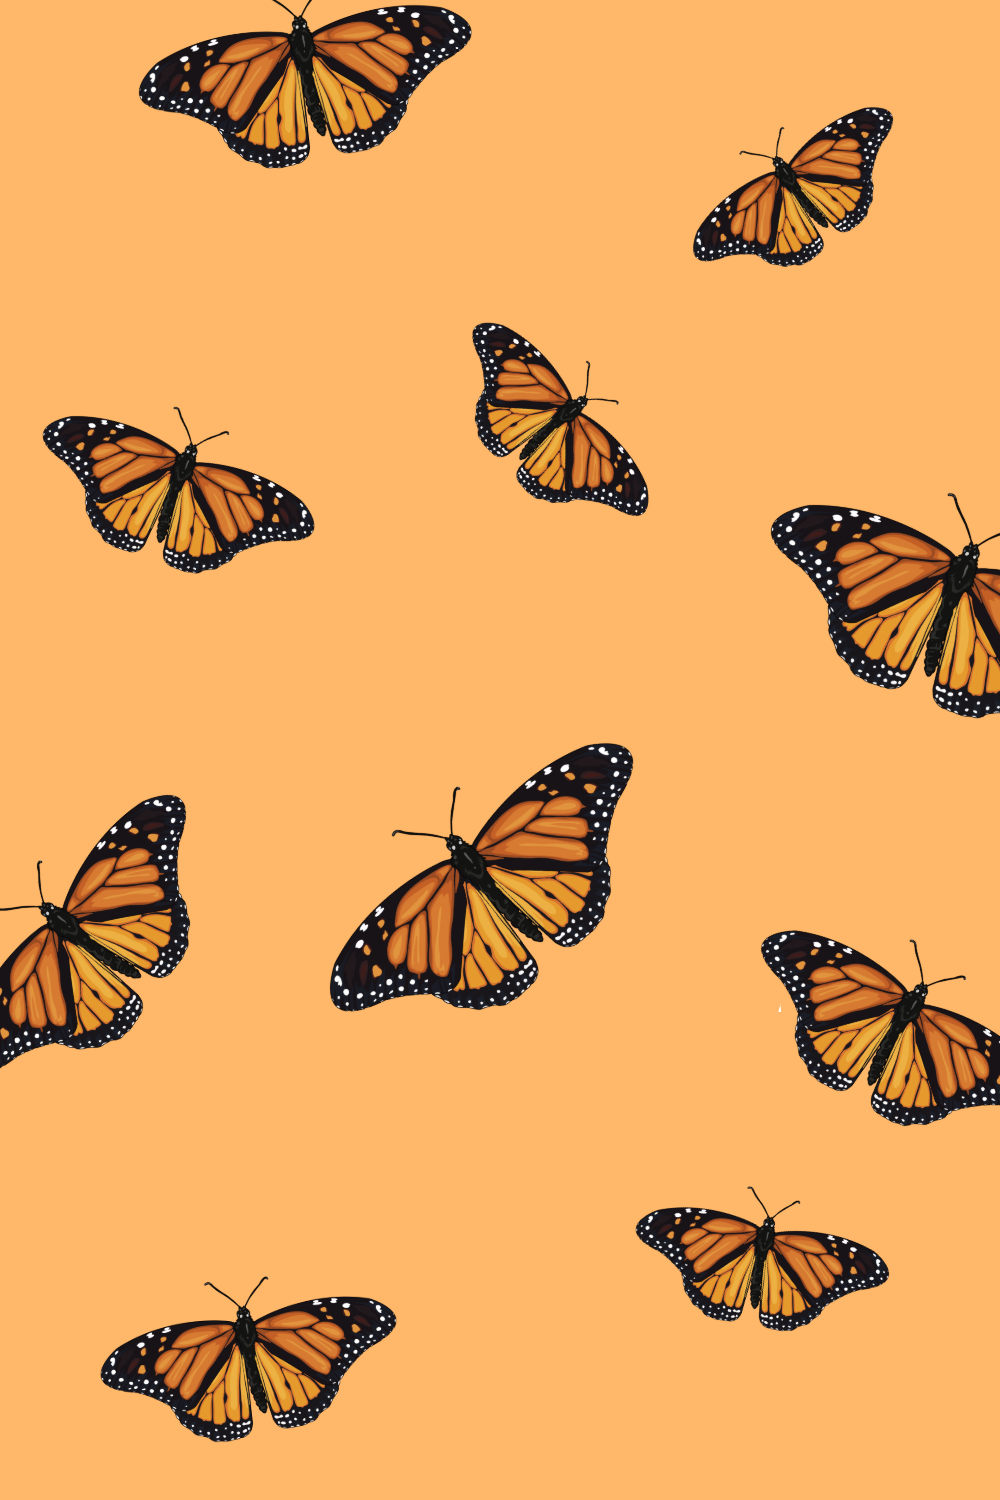 Asthetic Butterfly Wallpaper Vsco